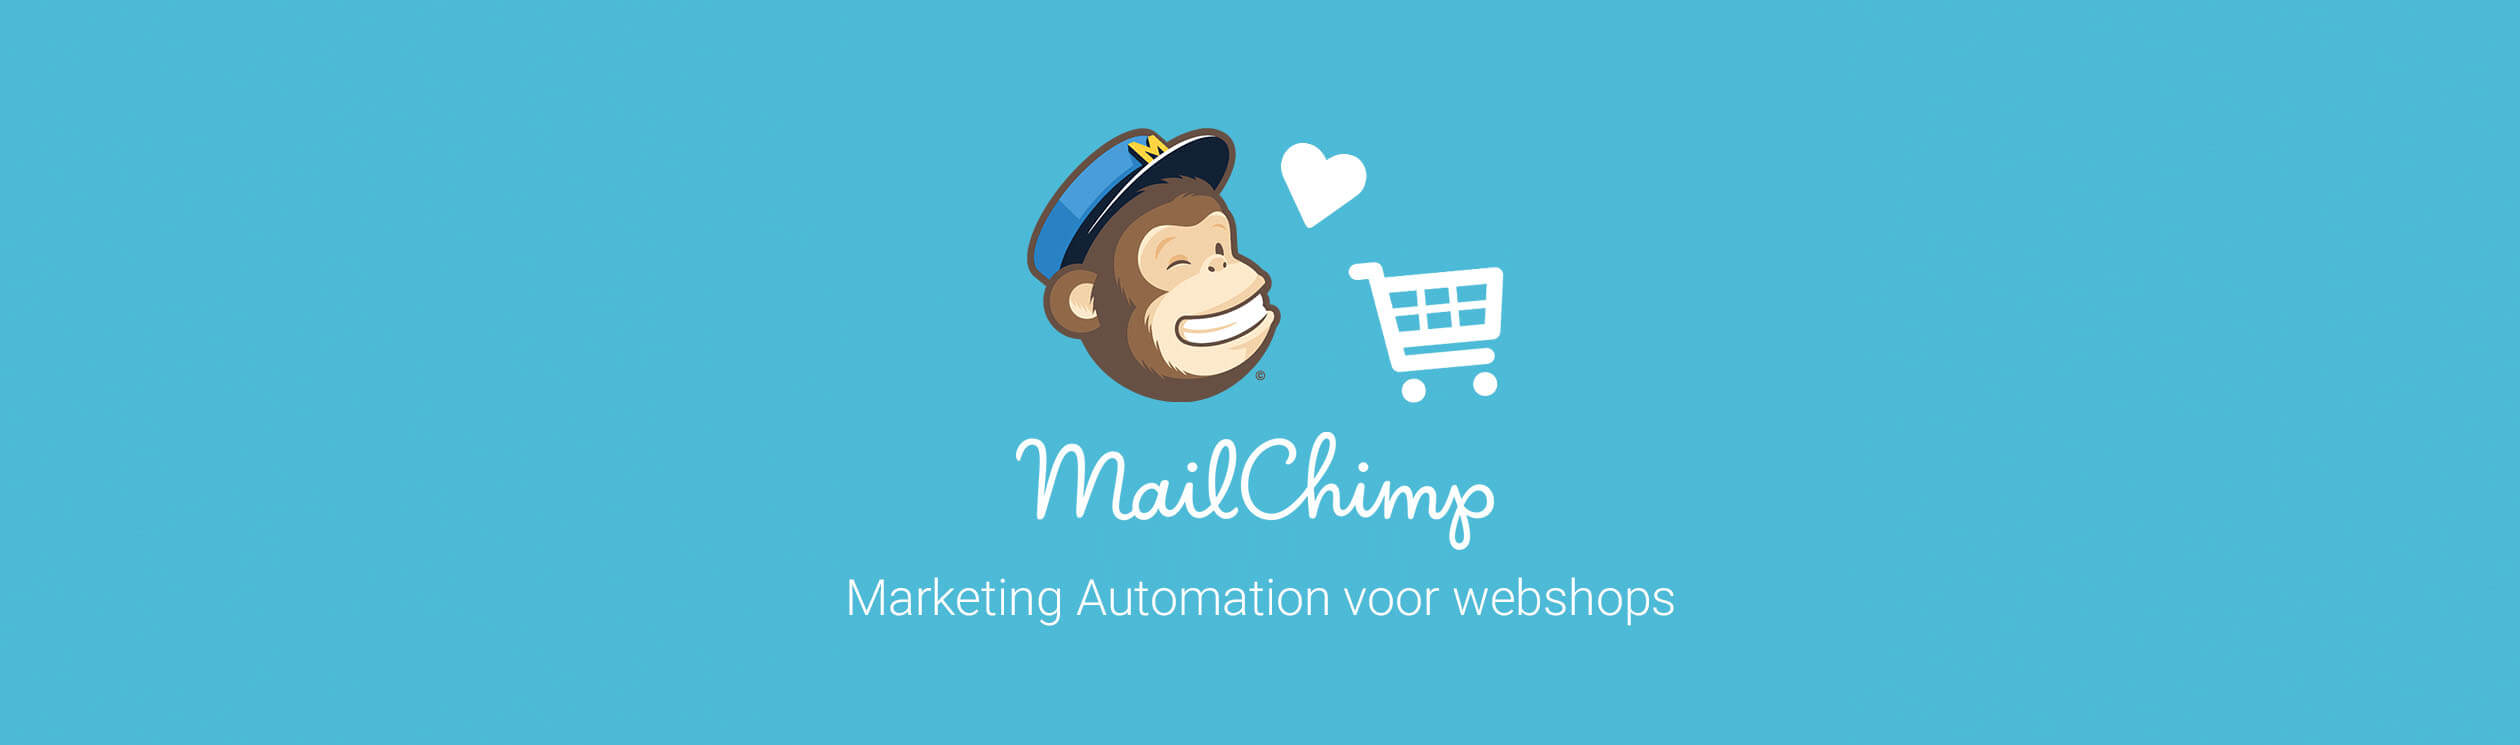 Magento en Marketing automation ideeën met Mailchimp